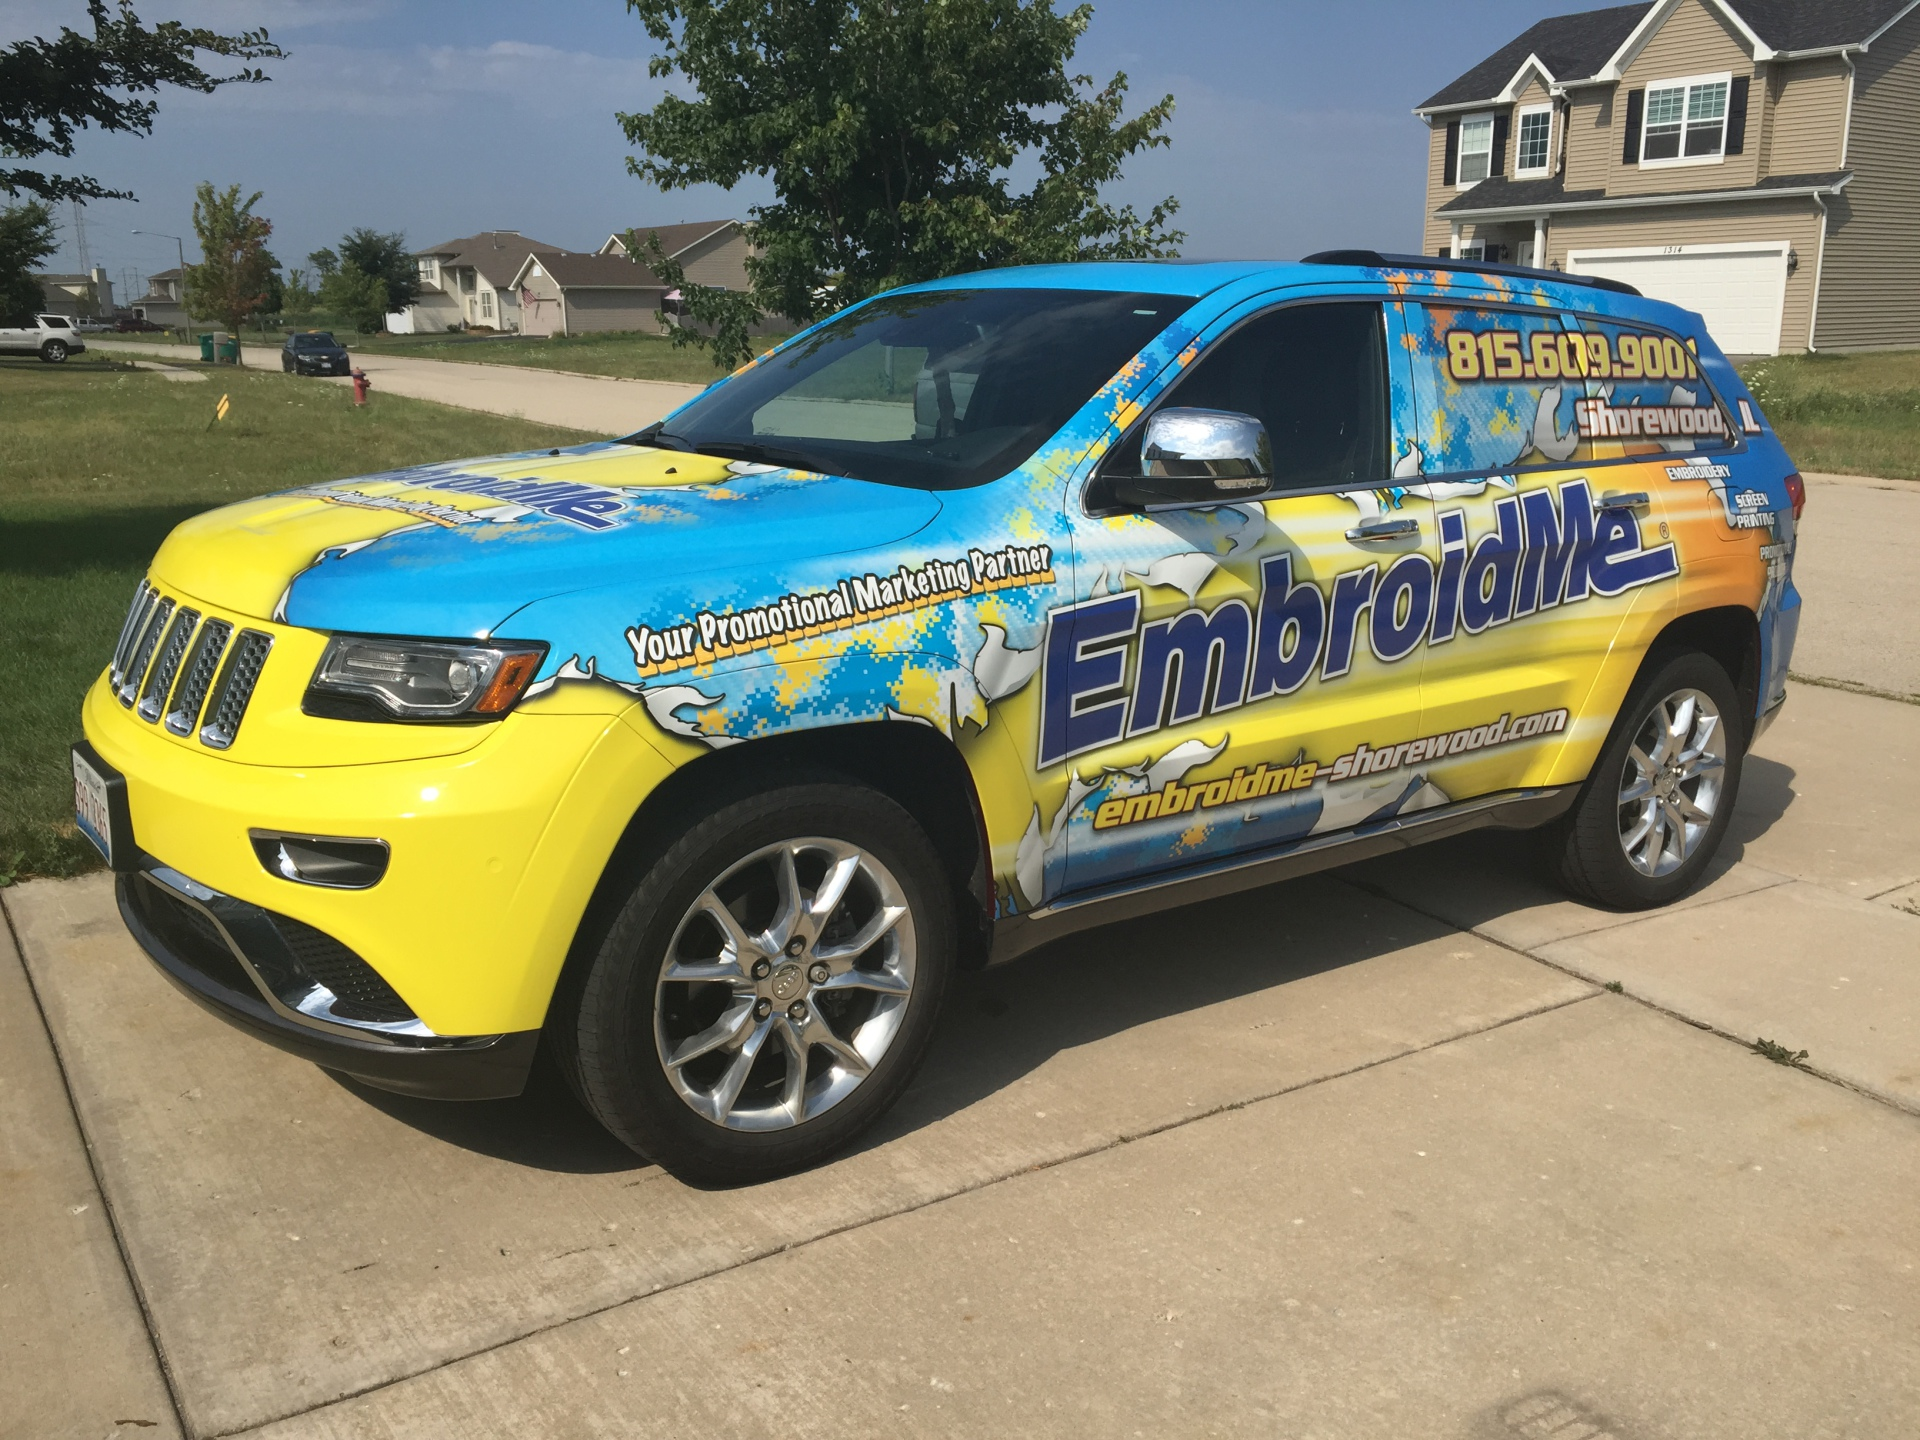 EmbroidMe Chicago - Rip design, Jeep Grand Cherokee